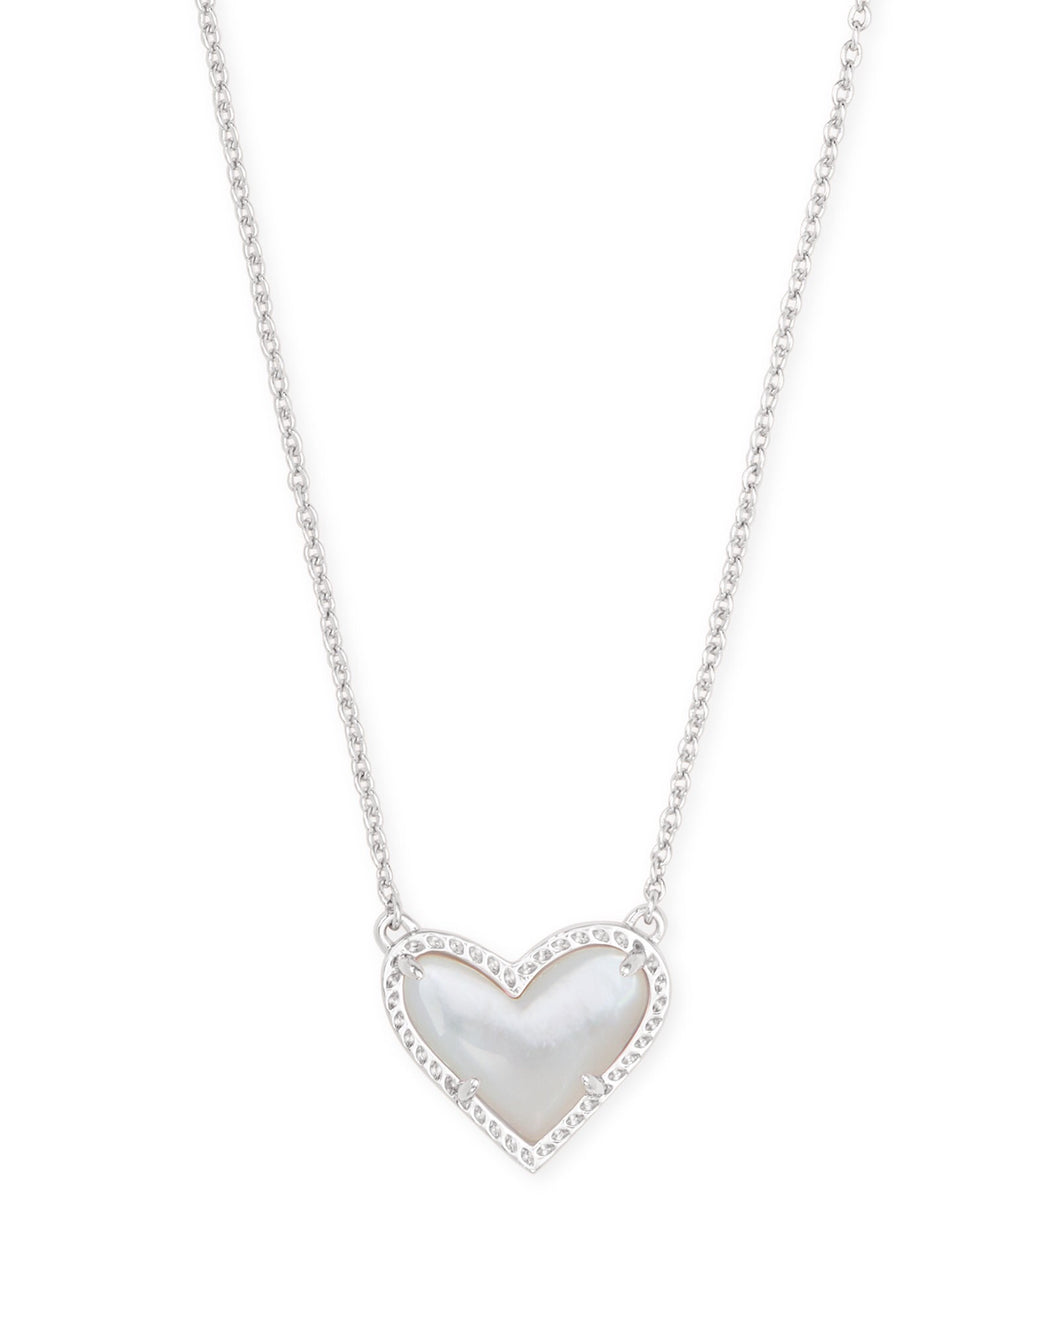 Ari Silver Heart Short Necklace-Ivory Mother of Pearl